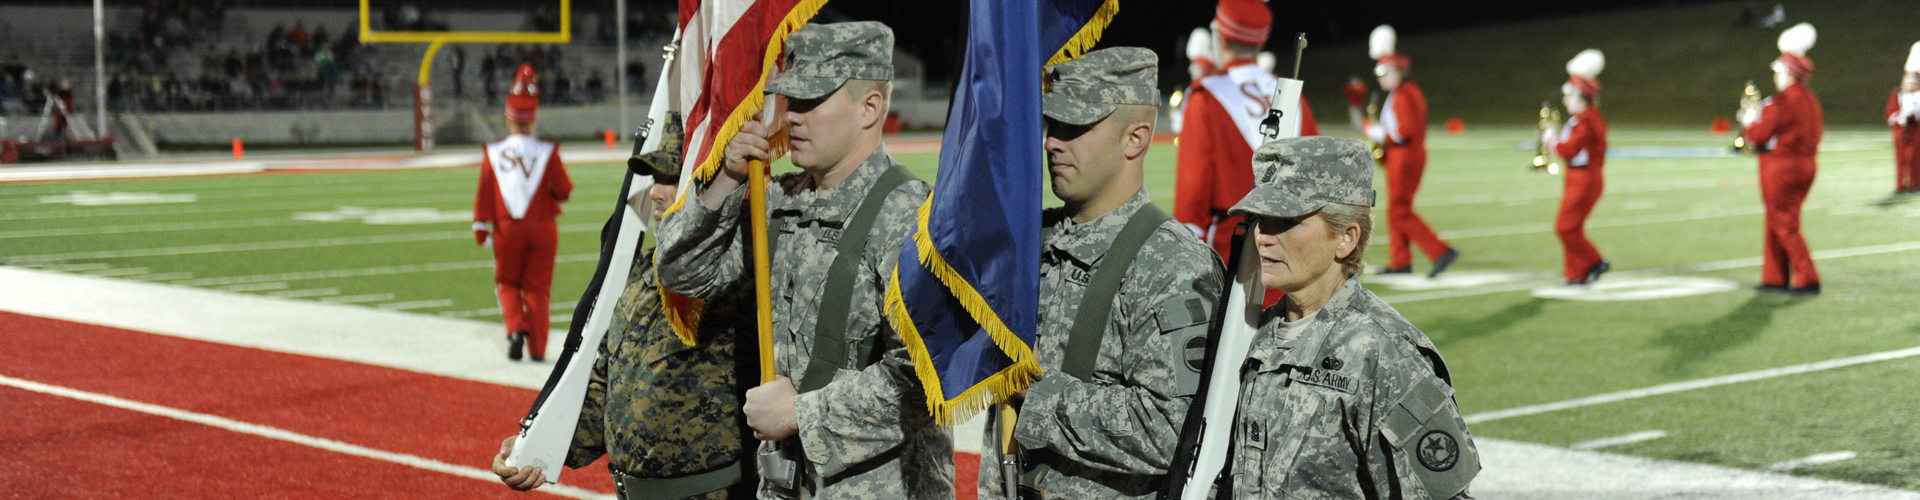 Military members carry flags before a SVSU football game